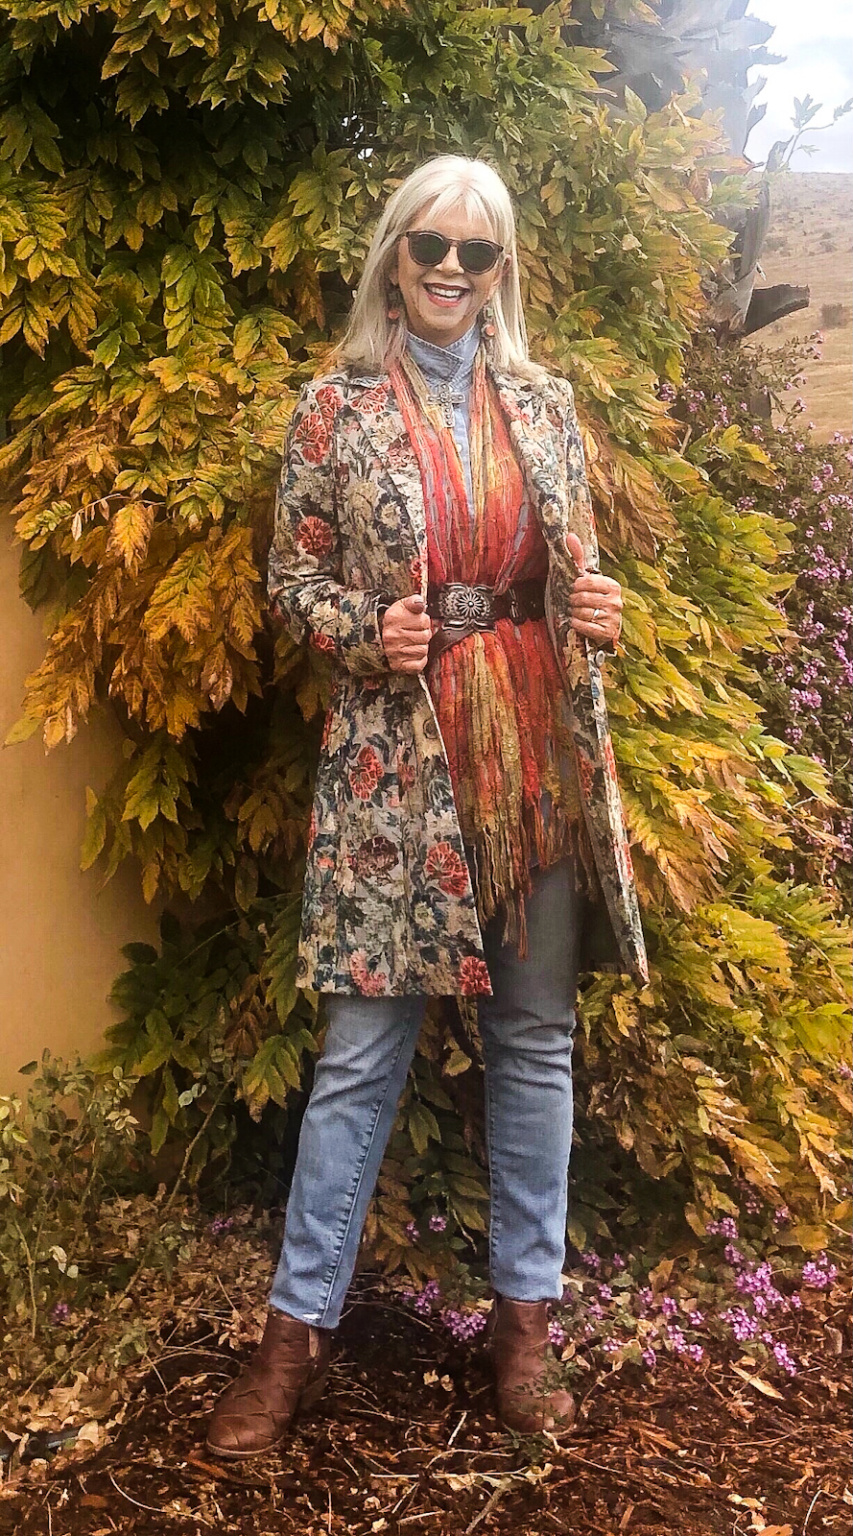 cindy hattersley in peruvian coat and scarf